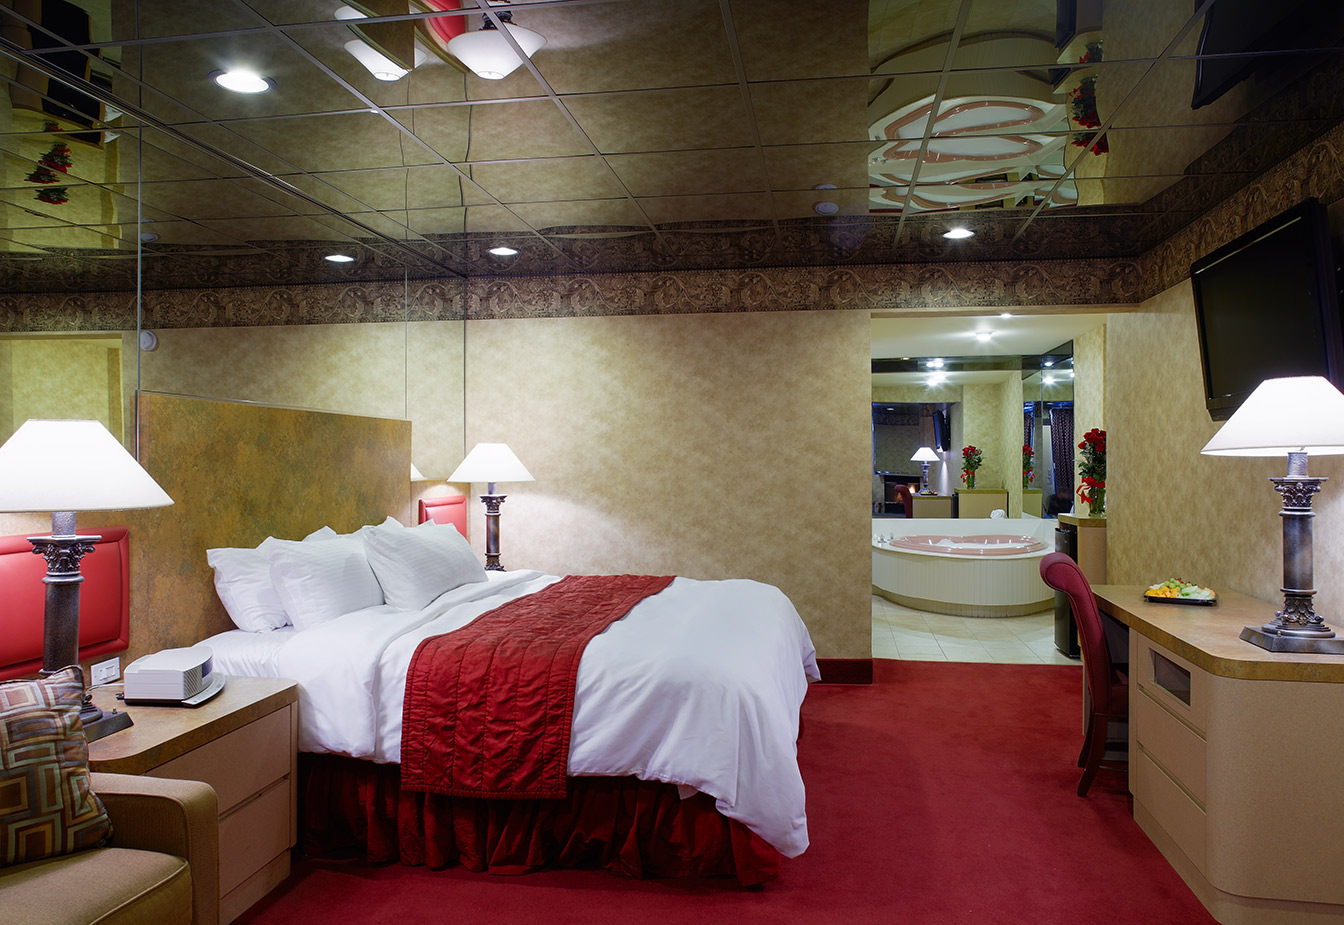 Romantic Hotels In Nj With Jacuzzi In Room